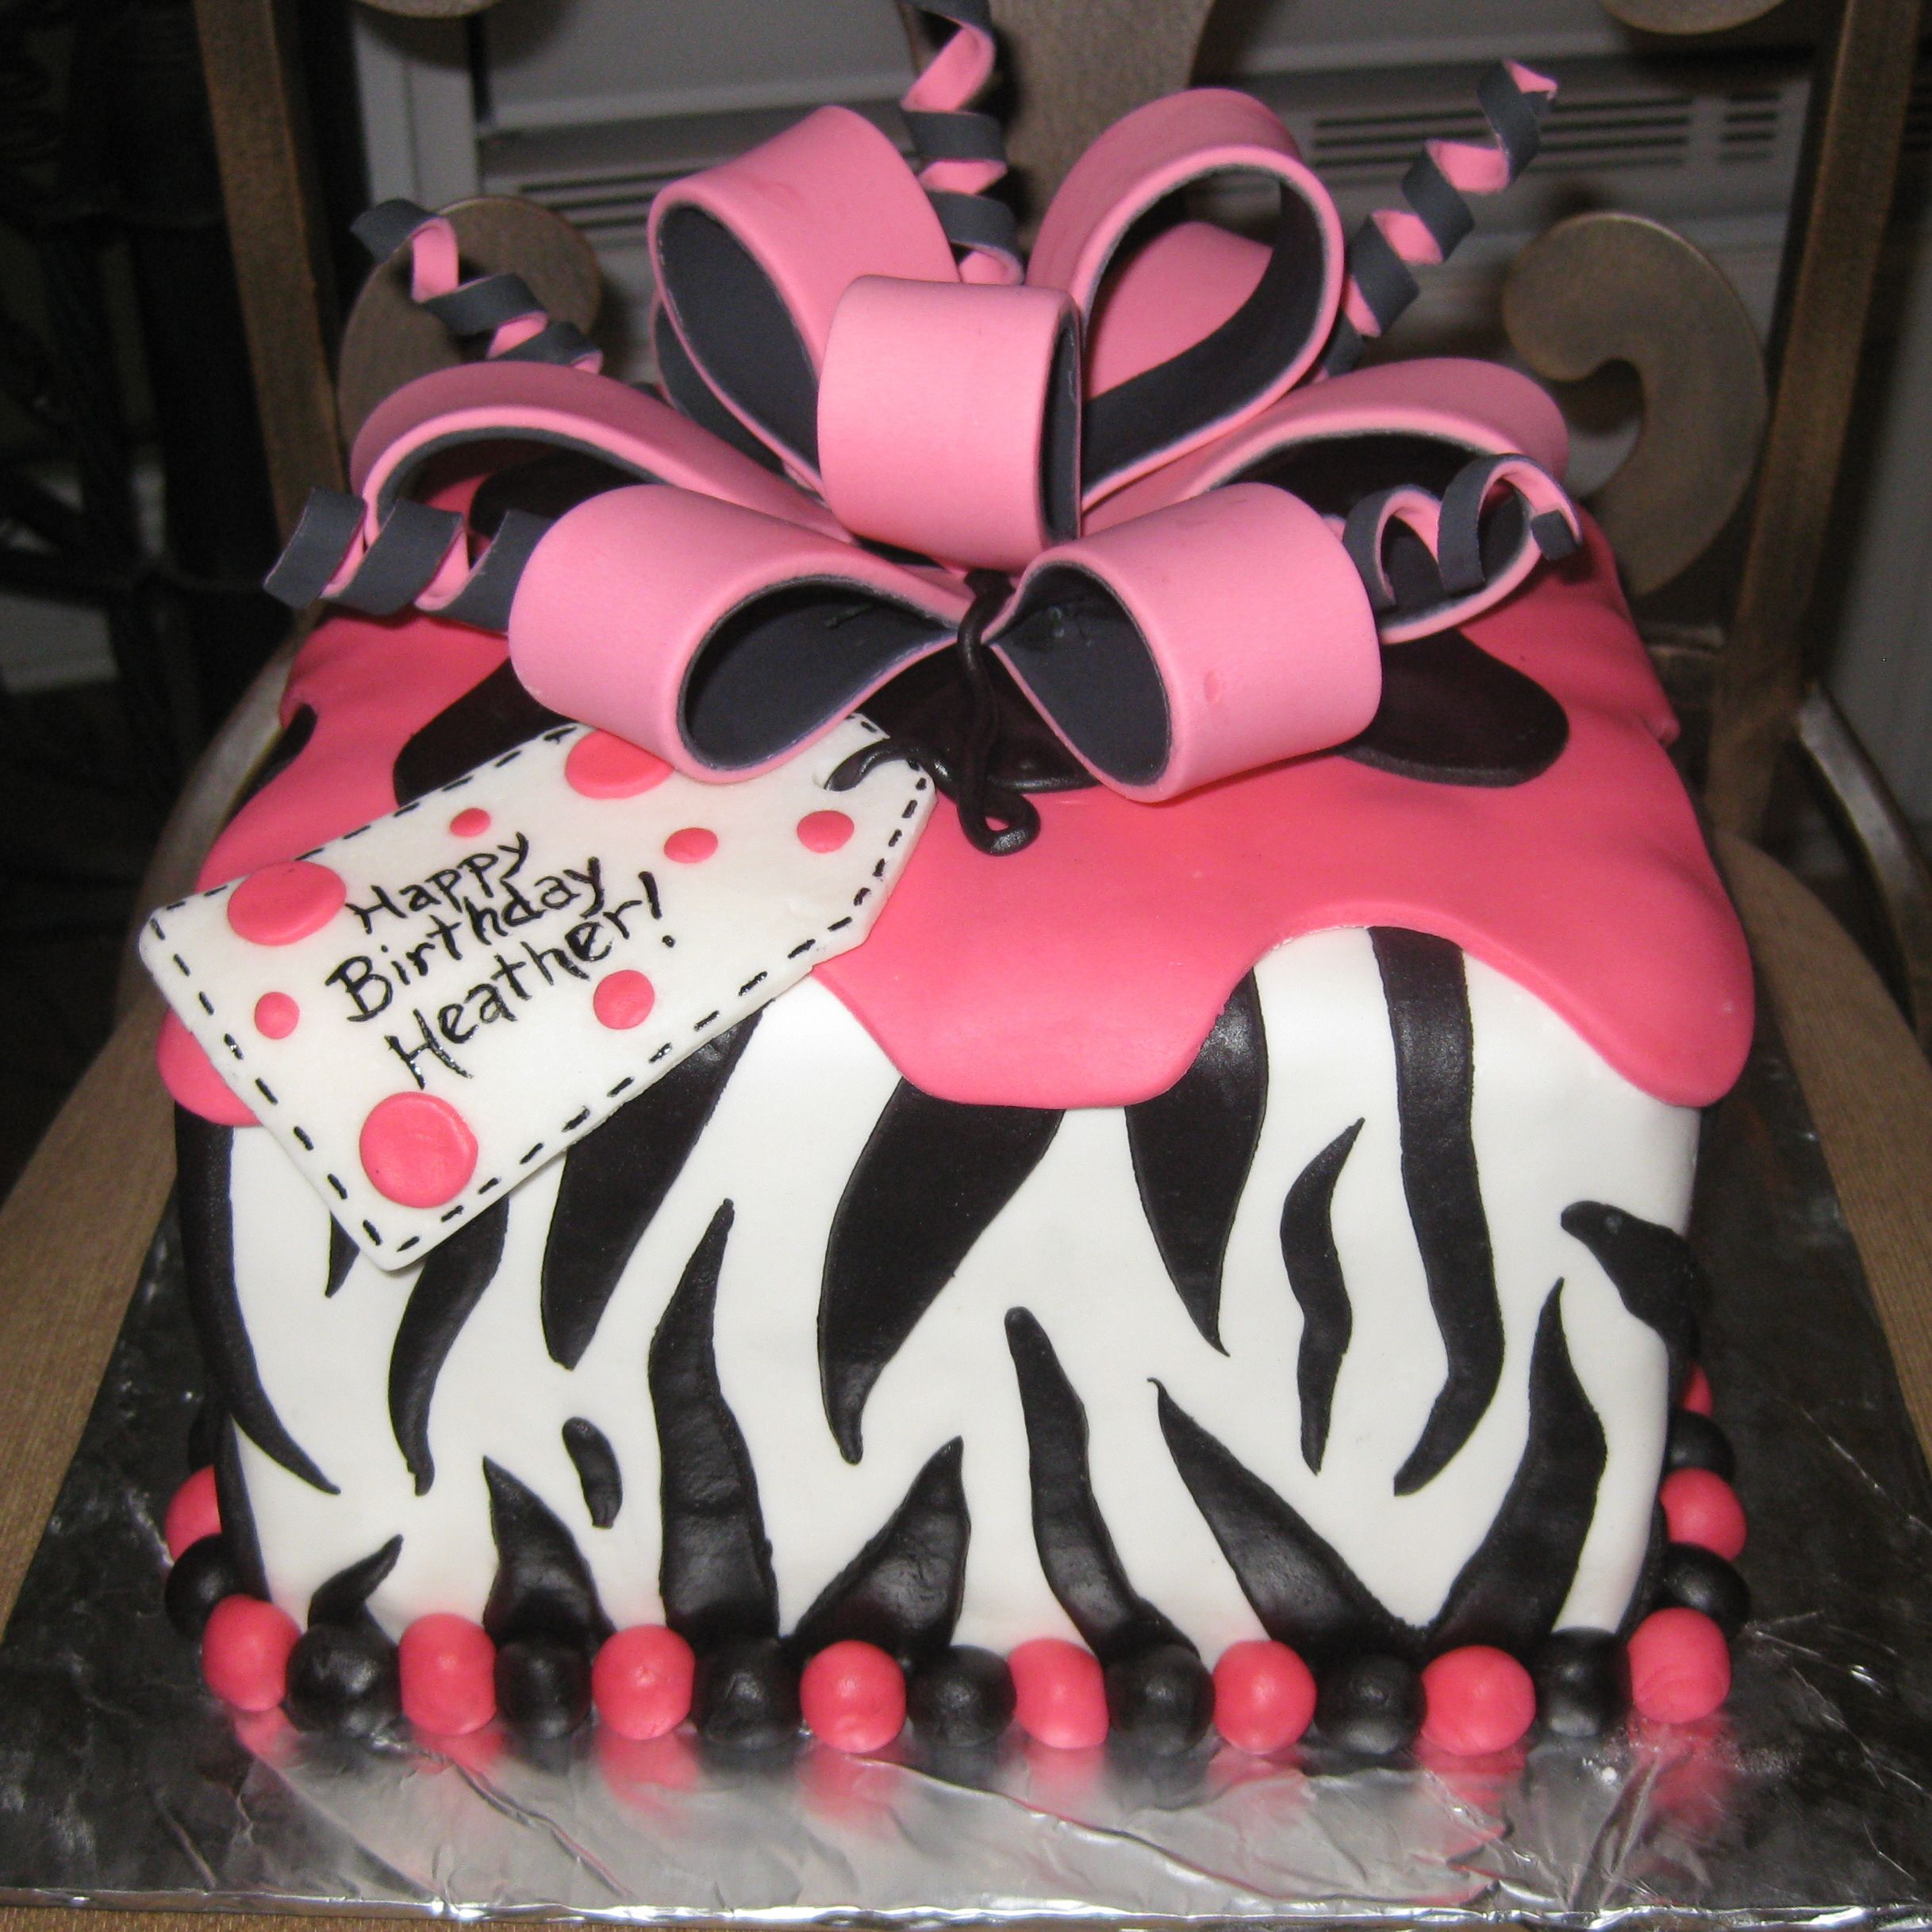 Hot Pink And Black Zebra Stripe Cake cakepinscom Inspiring Ideas